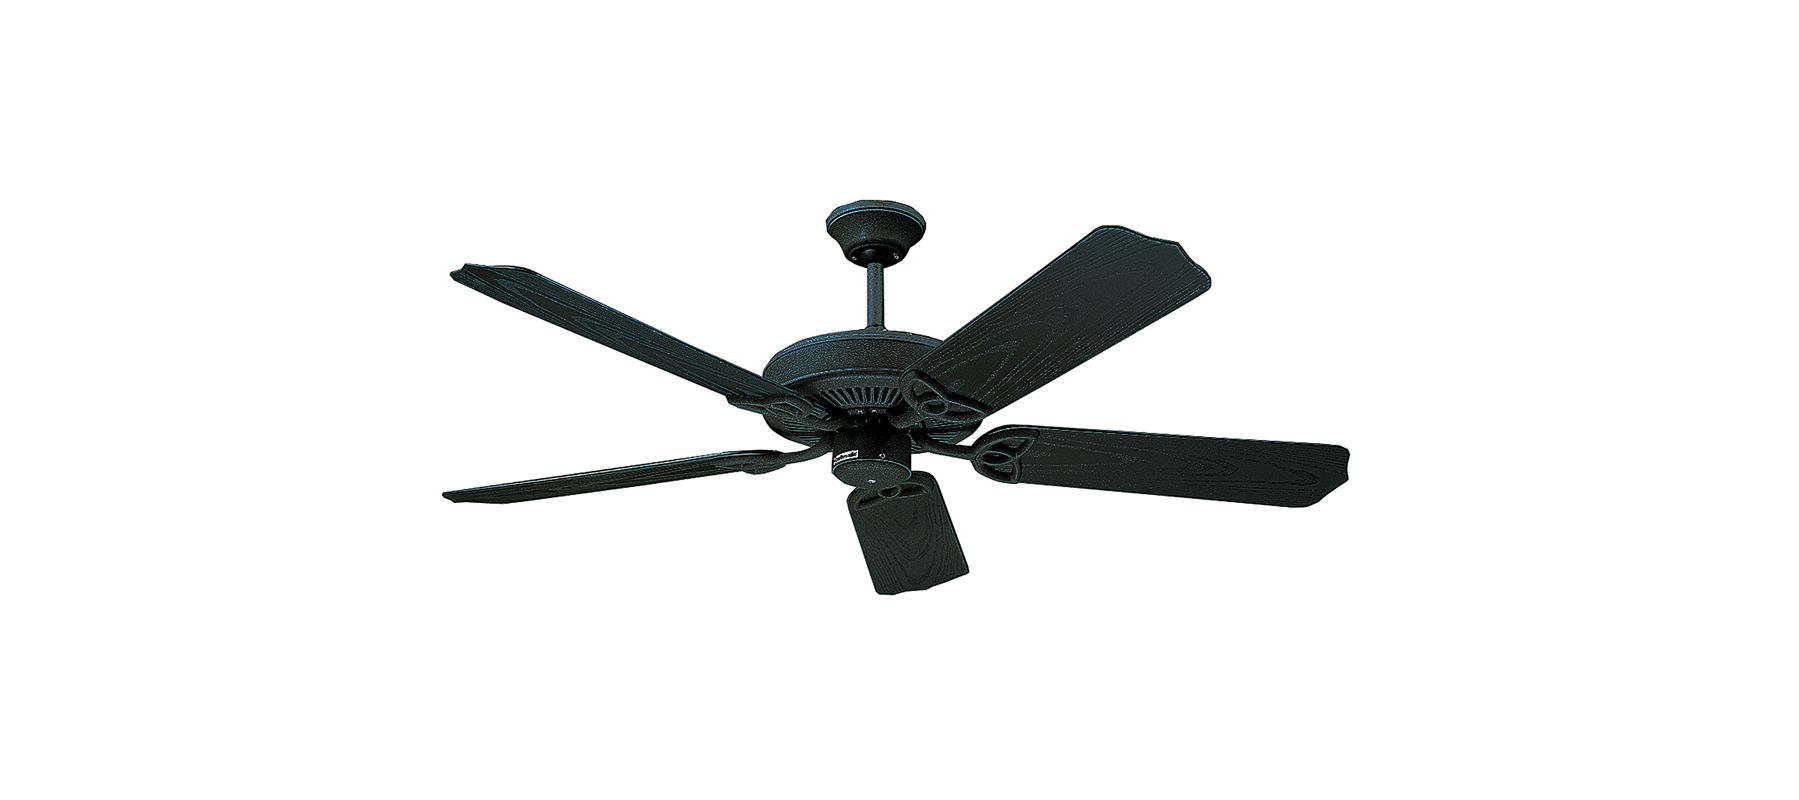 Craftmade BCD5-42 Set of Traditional / Classic 42 Inch Fan Blades for